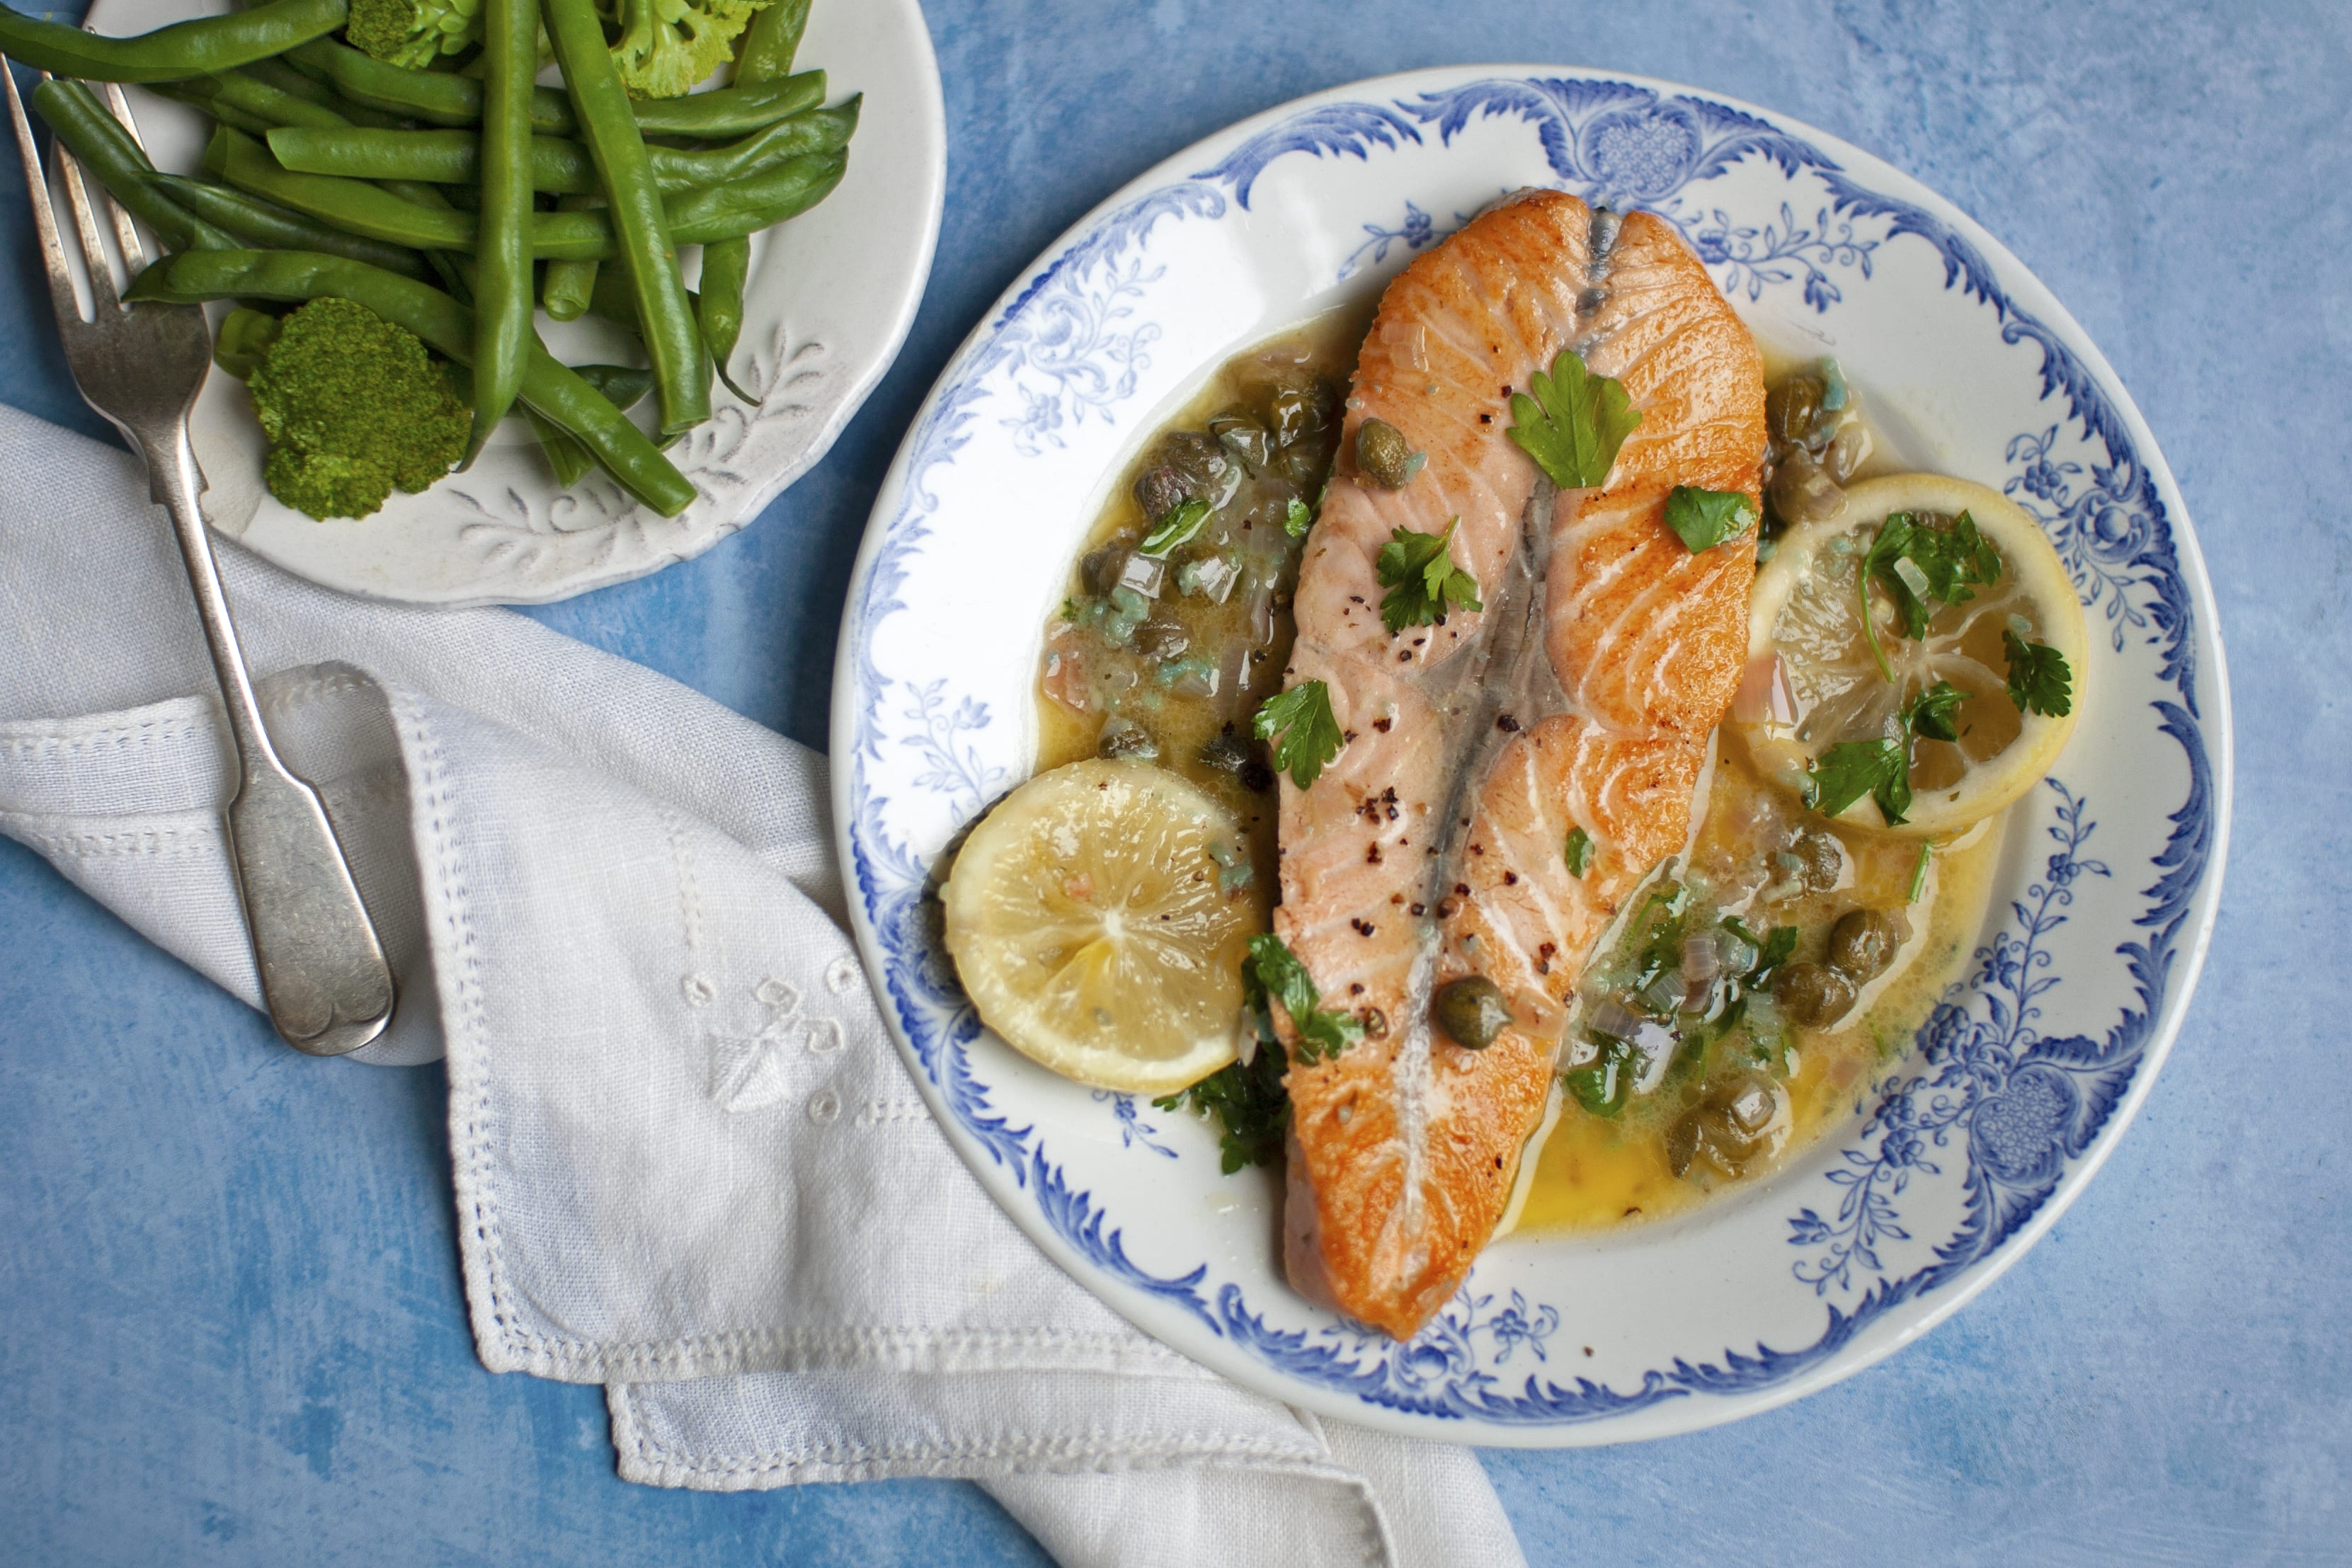 Salmon in Lemon Butter Sauce with Green Vegetables